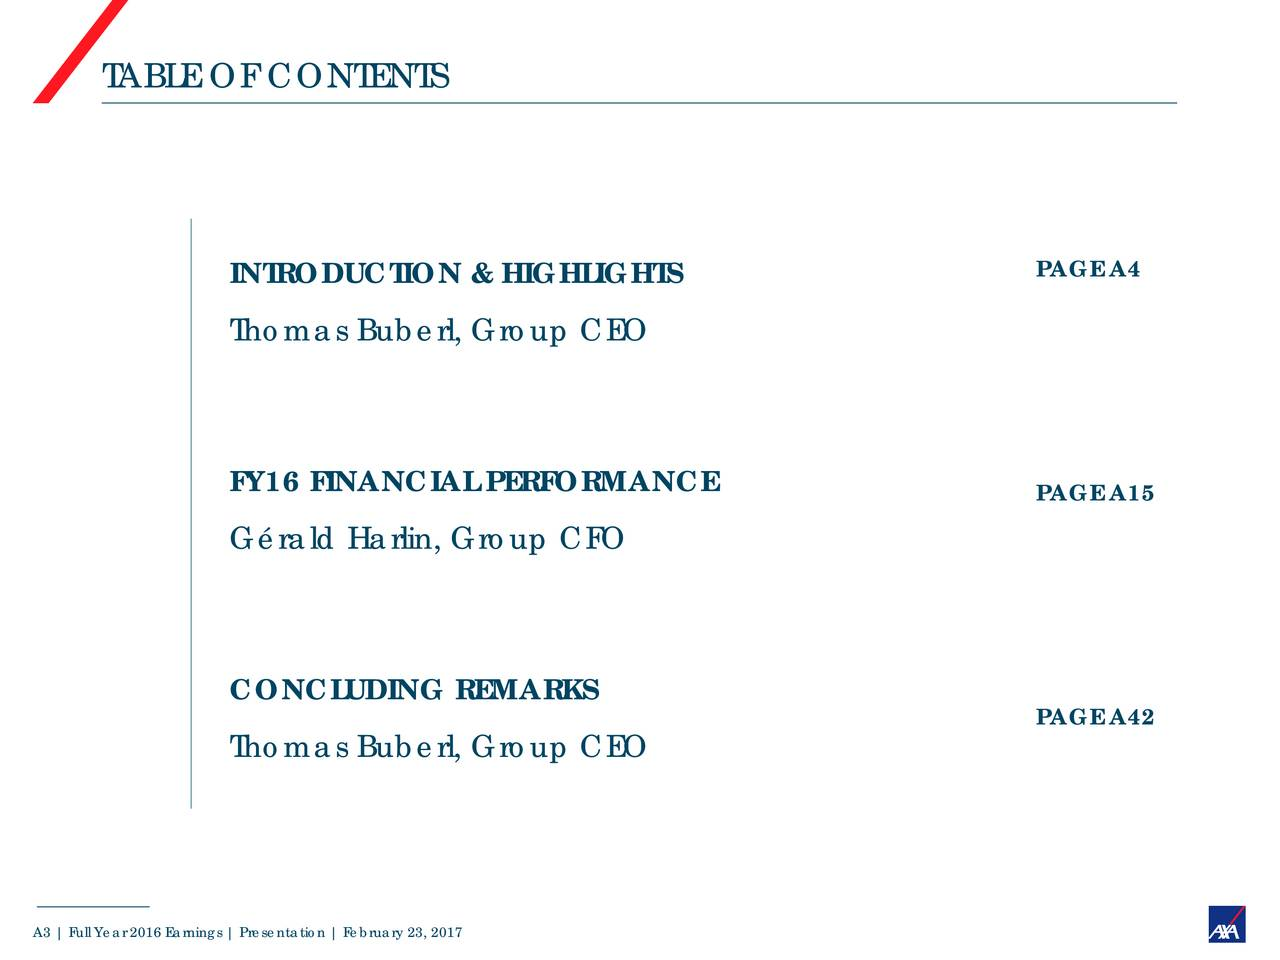 INTRODUCTION & HIGHLIGHTS PAGE A4 Thomas Buberl, Group CEO FY16 FINANCIAL PERFORMANCE PAGE A15 Grald Harlin, Group CFO CONCLUDING REMARKS PAGE A42 Thomas Buberl, Group CEO A3 | Full Year 2016 Earnings |Presentation| February 23, 2017